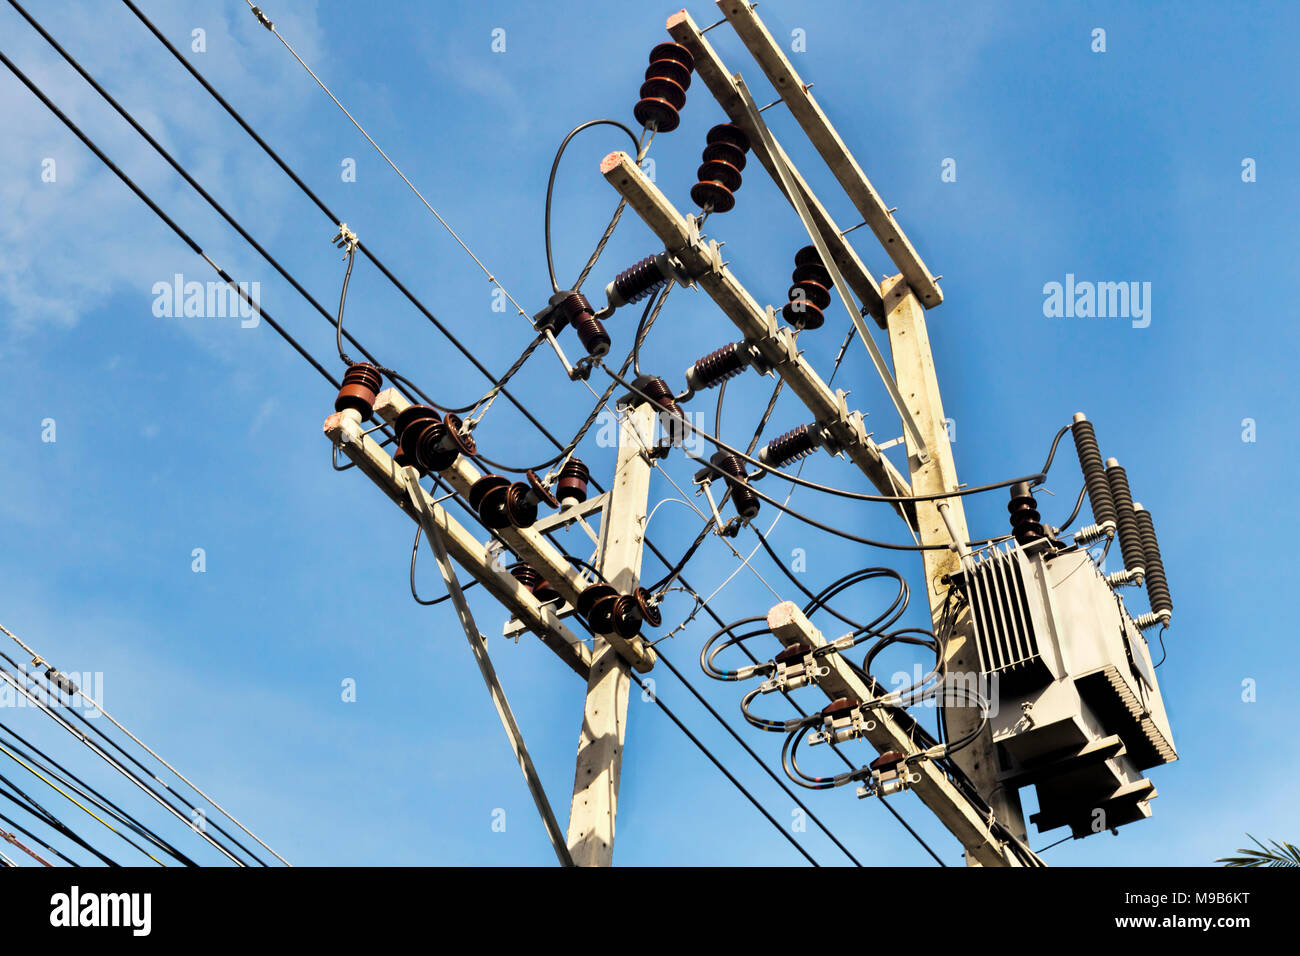 Power line piling for electricity s transport  through cables - Stock Image